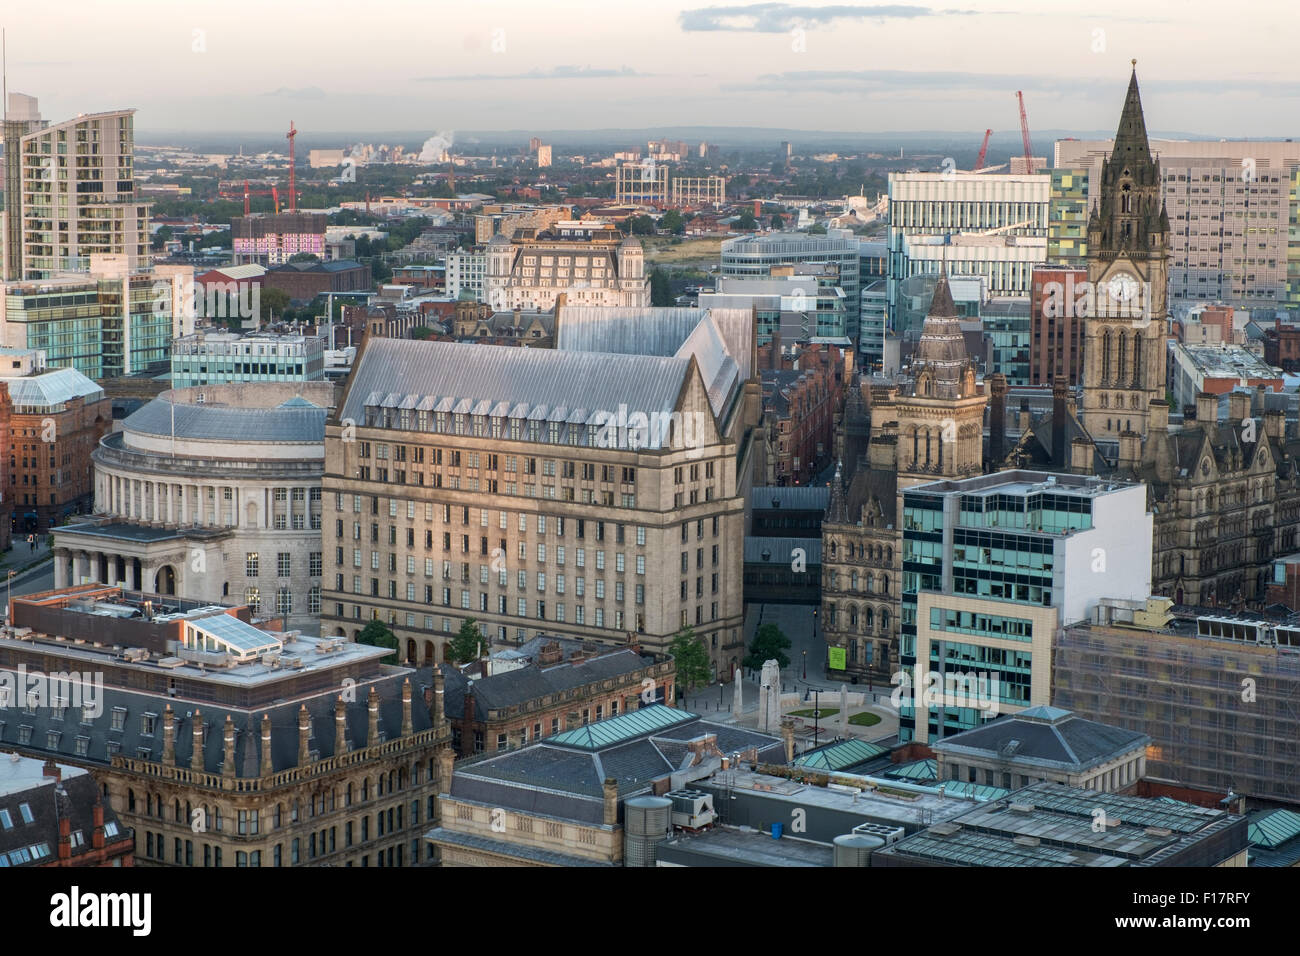 High viewpoint view over Manchester City Centre - Stock Image